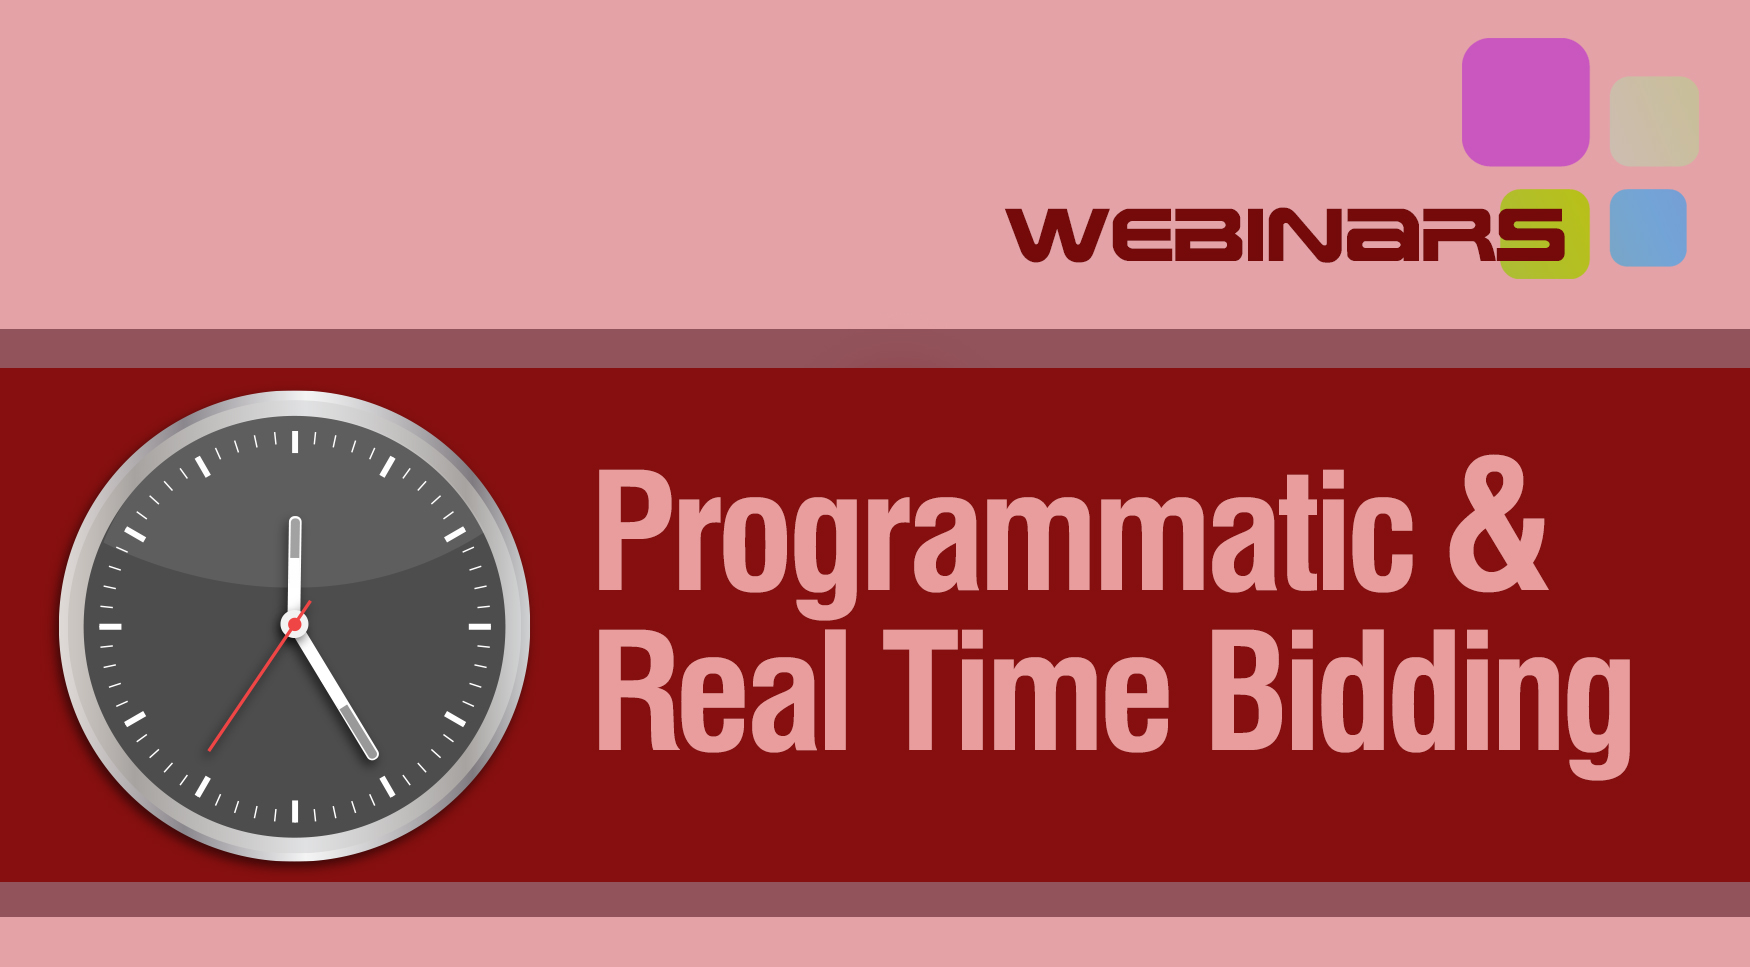 Programmatic and Real Time Bidding